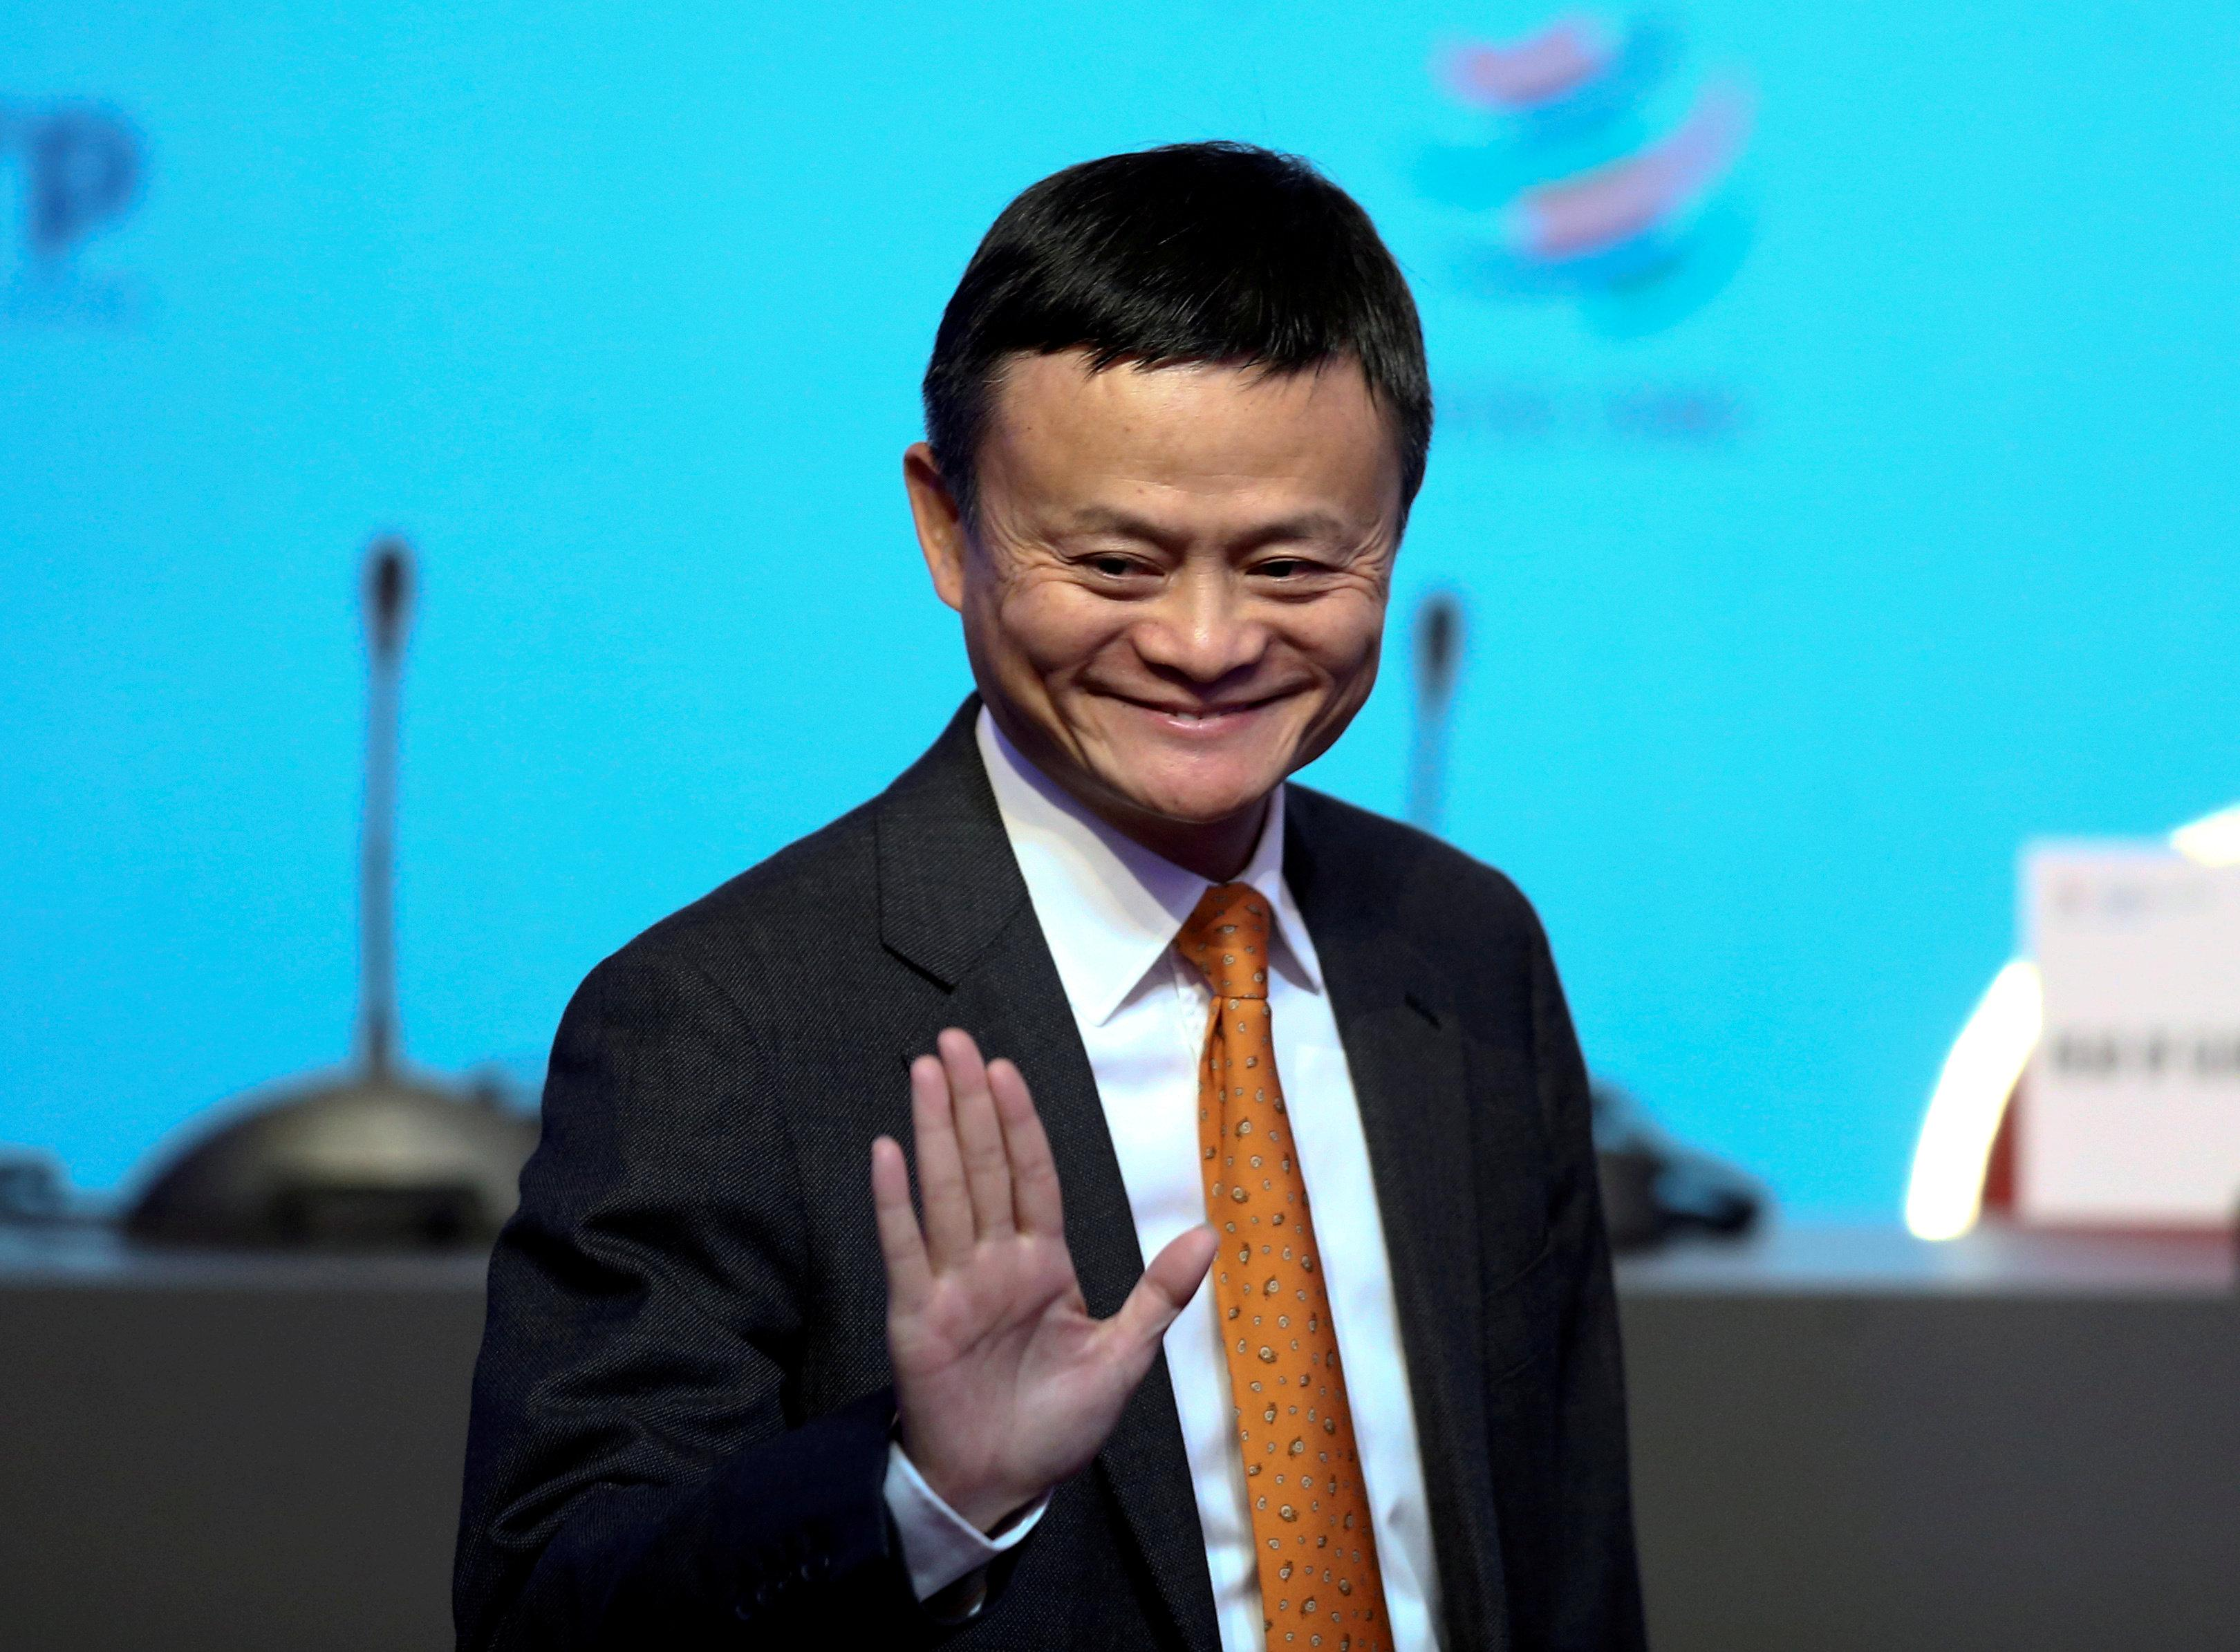 Alibaba Group Executive Chairman Jack Ma gestures as he attends the 11th World Trade Organization's ministerial conference in Buenos Aires, Argentina December 11, 2017. Marcos Brindicci